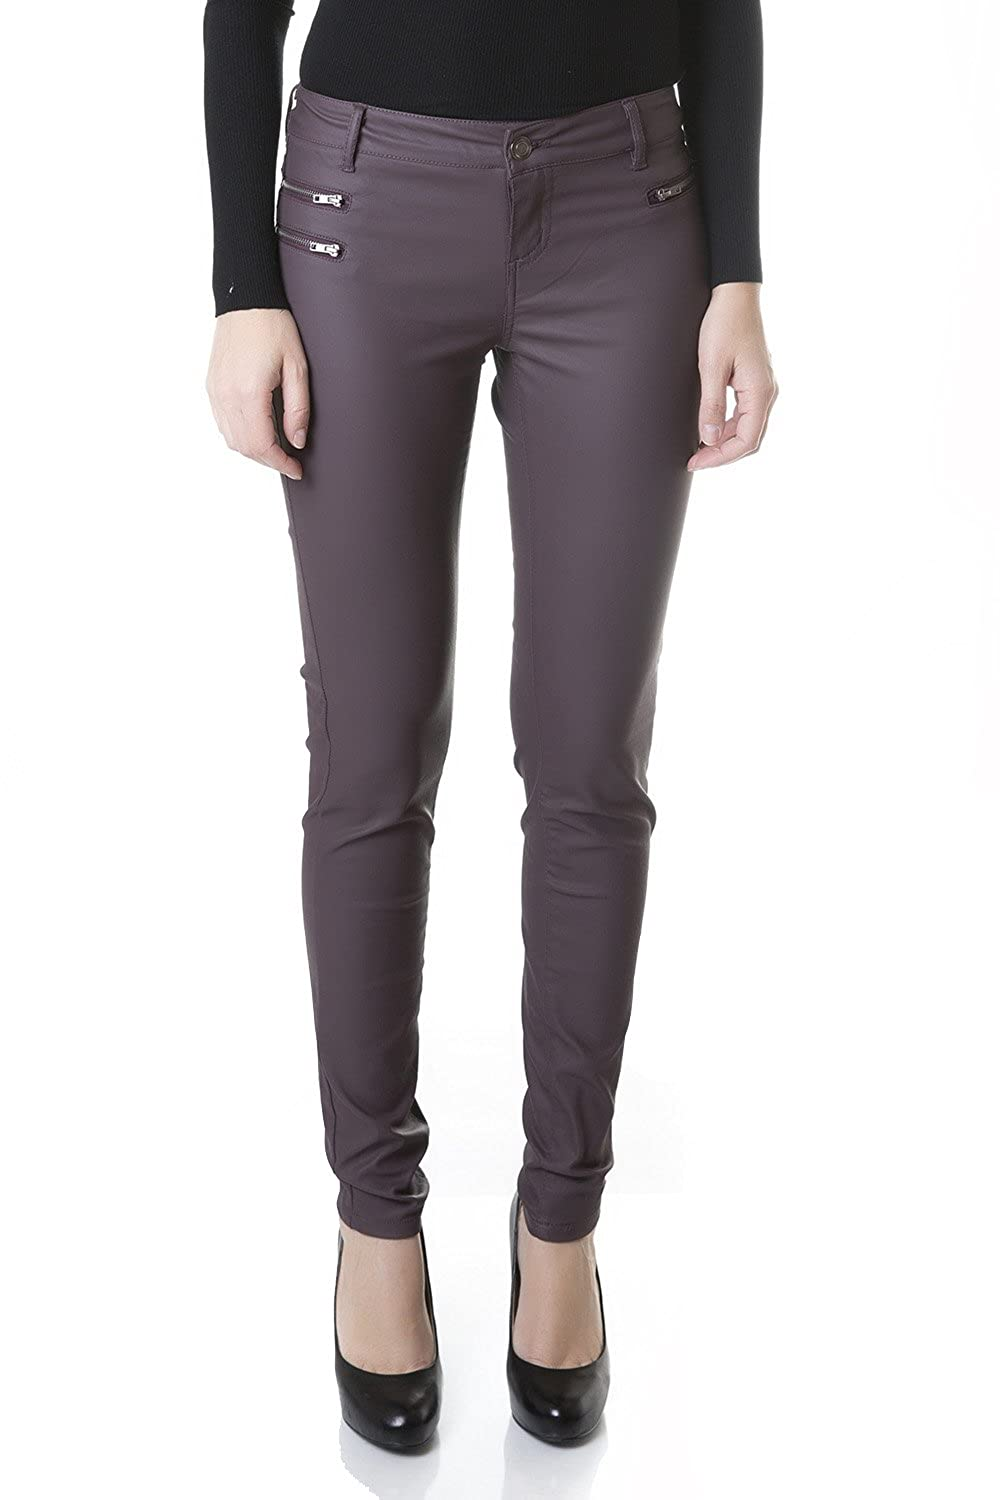 49f2615dd5f327 Ponte Leggings- Decorative Front Pockets -Stretchy - Faux Leather Skinny  Pants Figure-flattering and comfy for an easy and all-day fit.